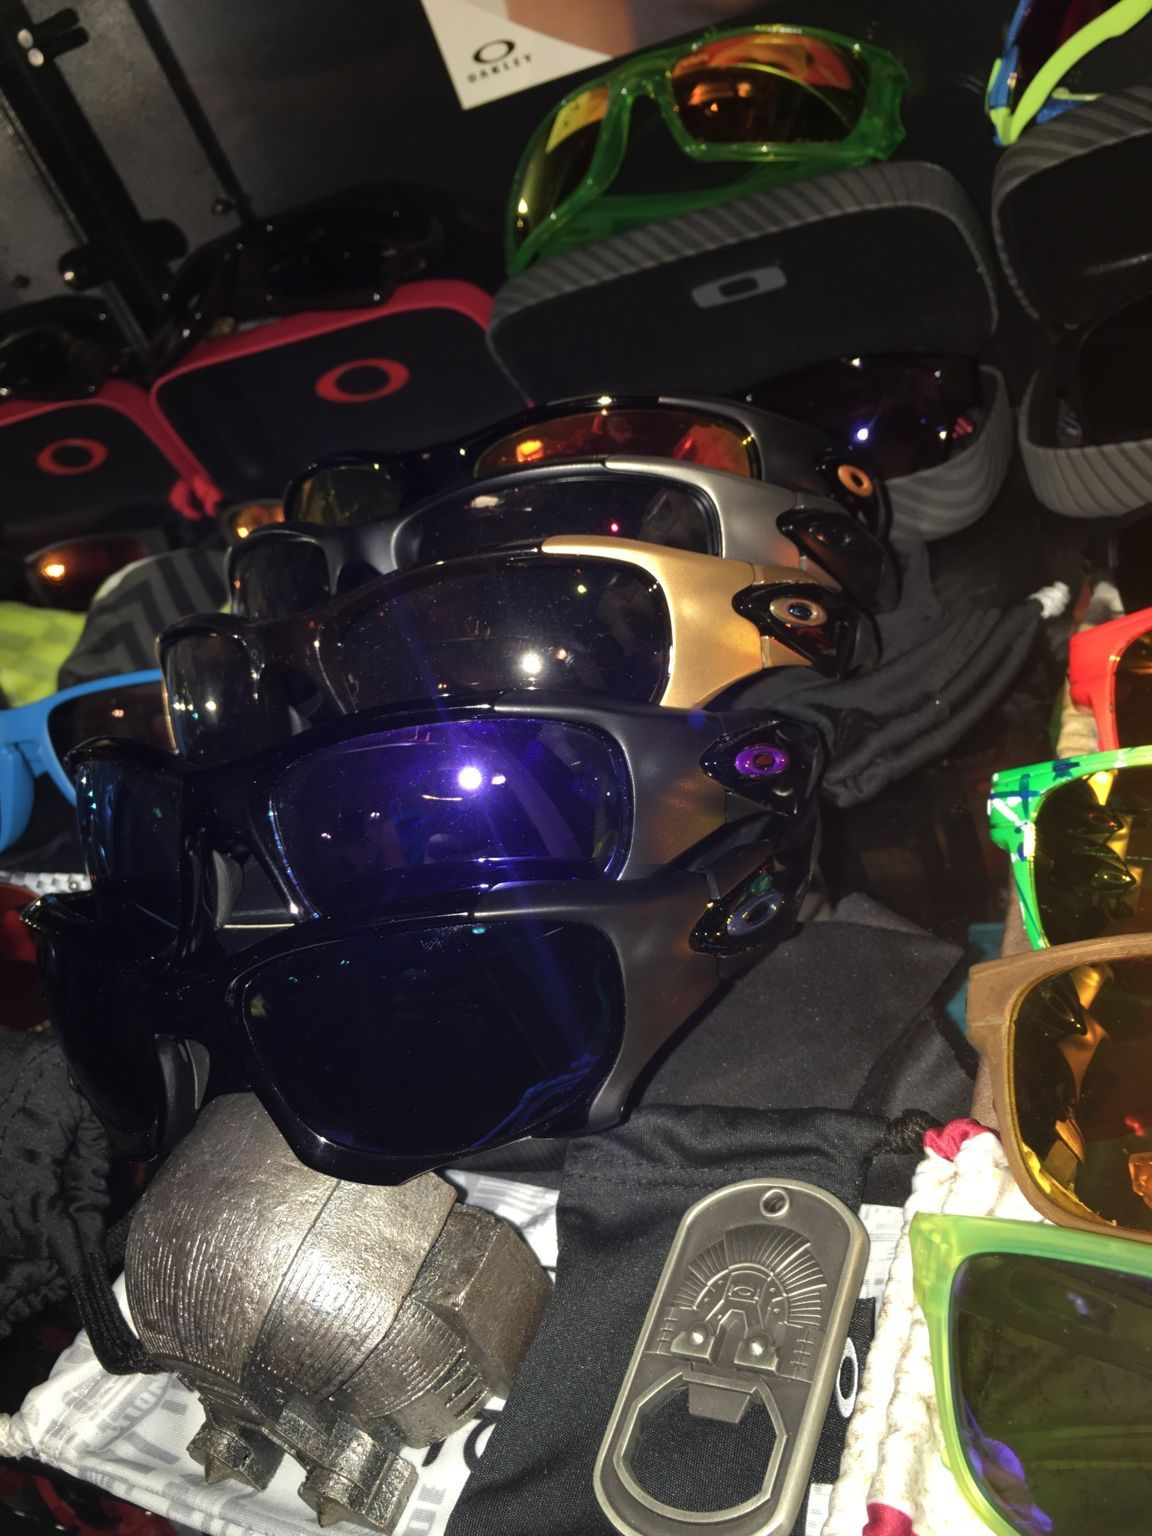 PB2 with custom lenses, let's see whatchu got! - 287f2c99ae450af93a30273205577a71.jpg